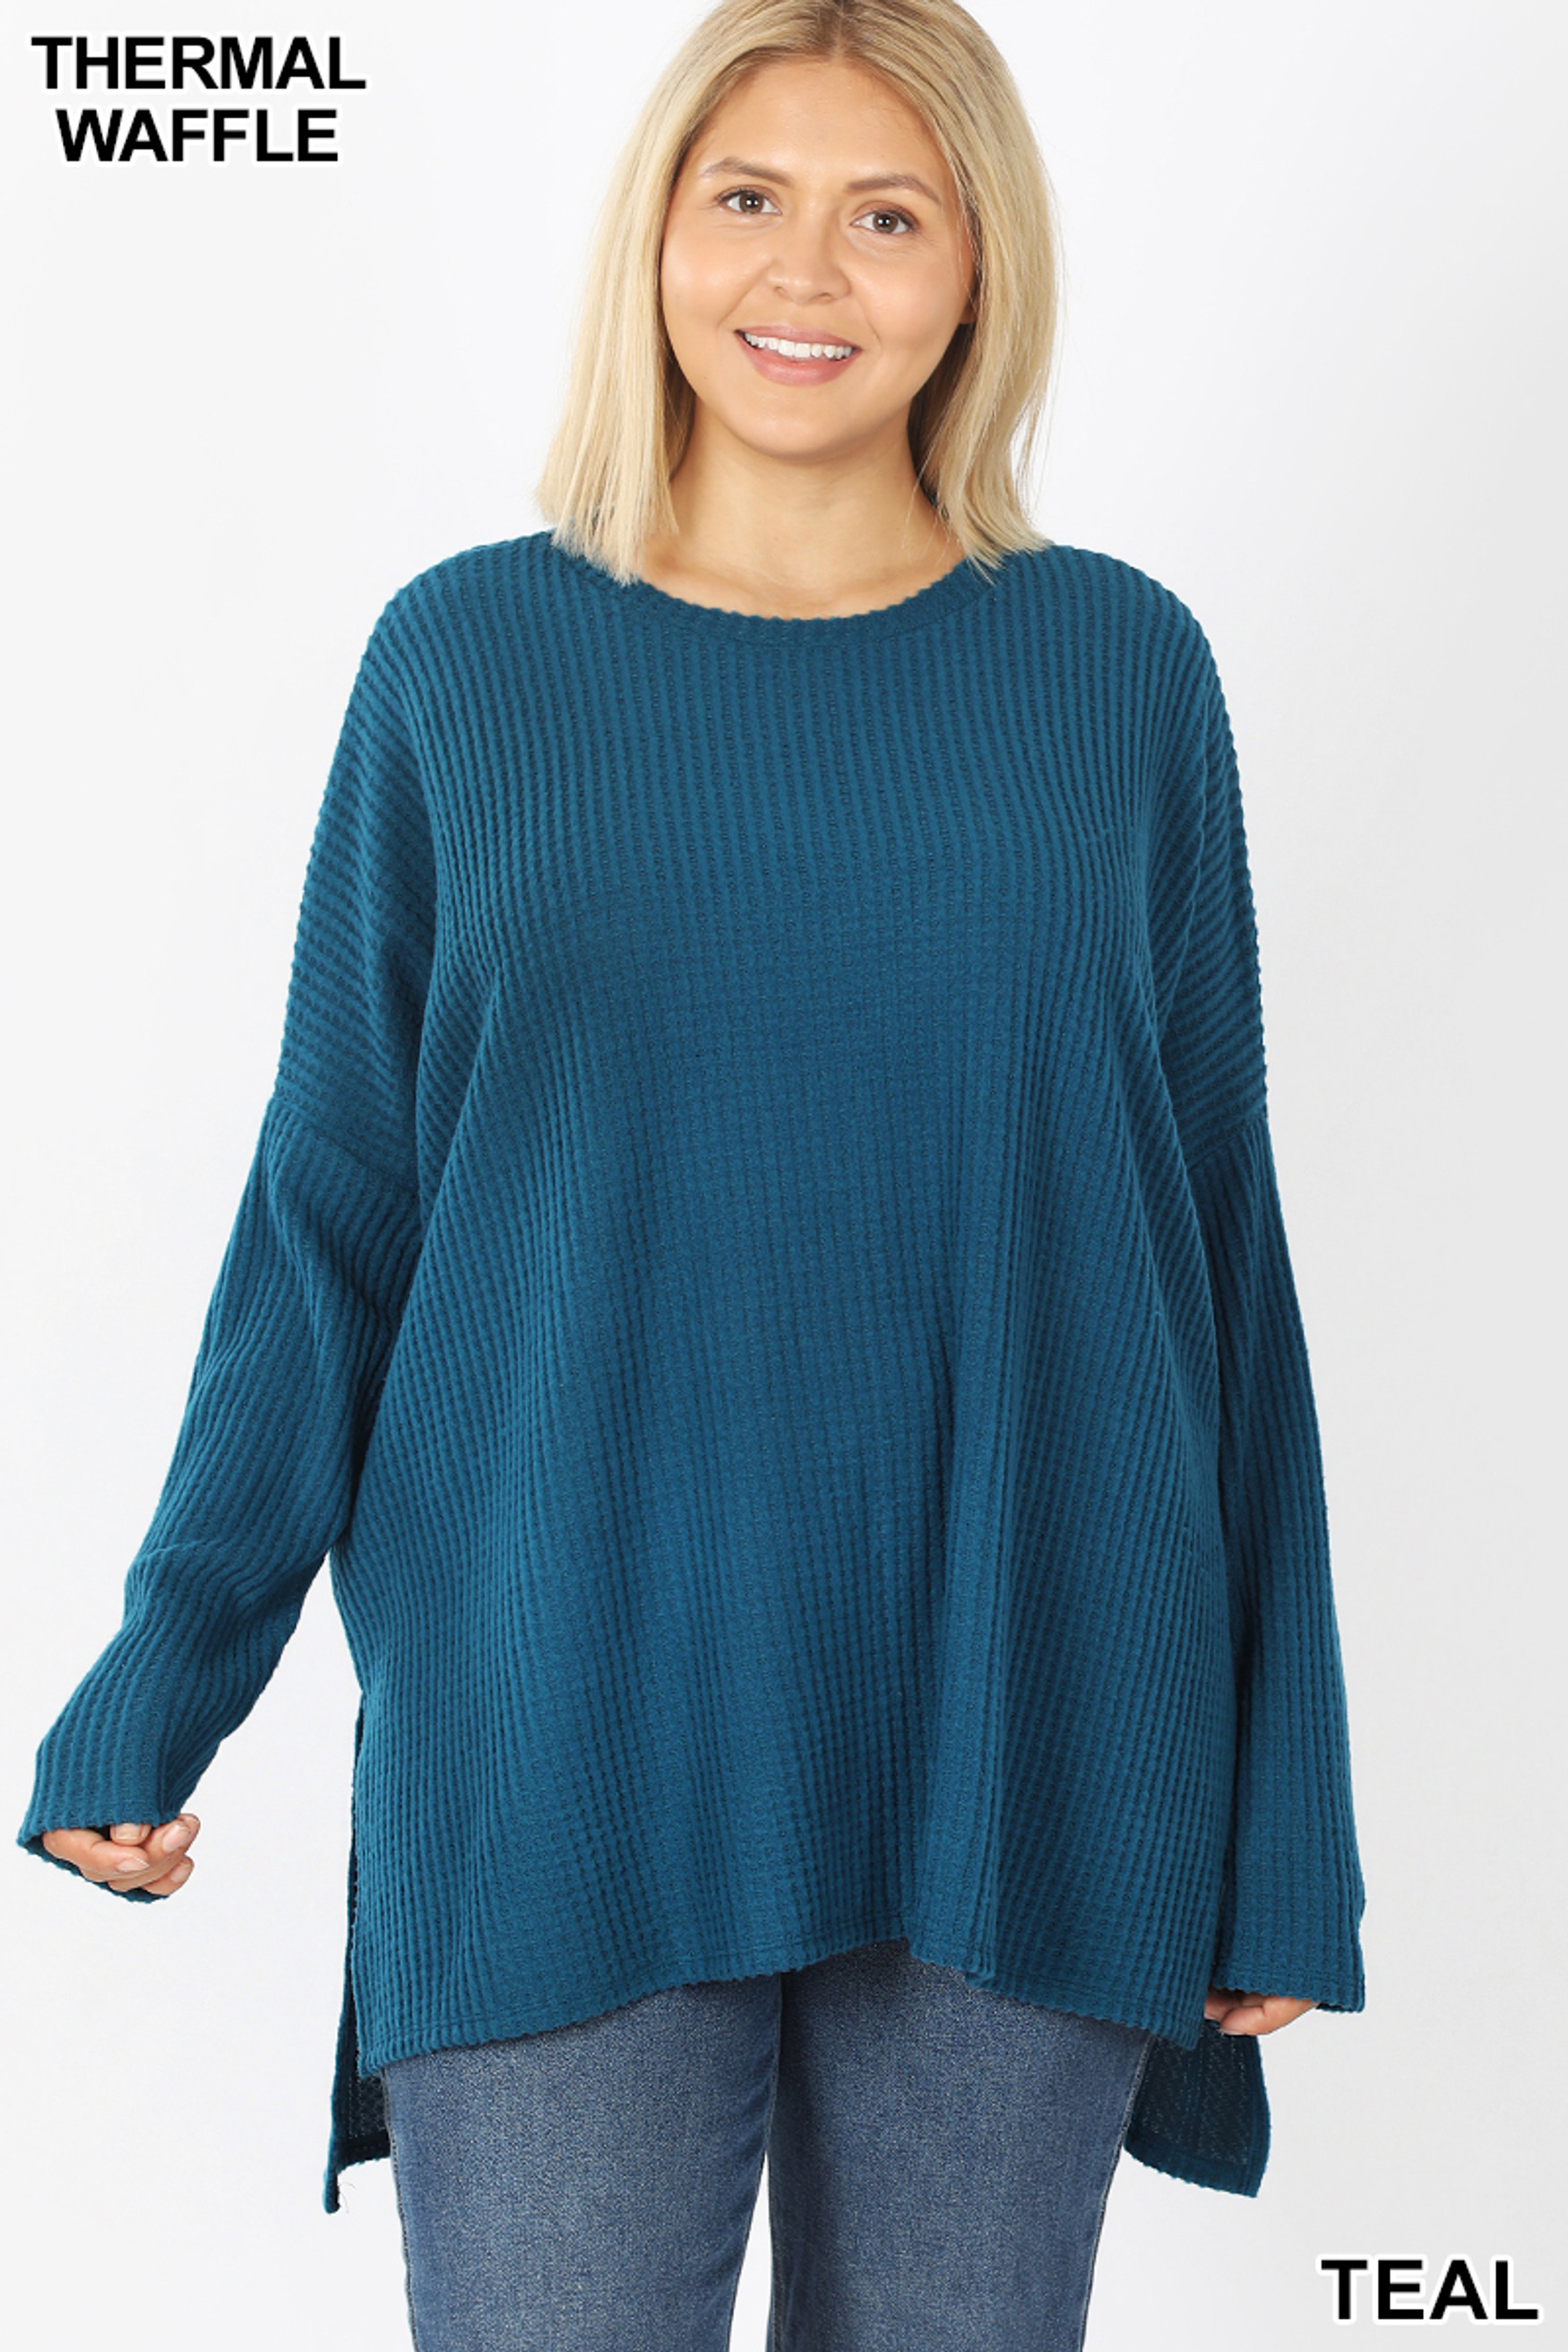 Front image of Teal Brushed Thermal Waffle Knit Round Neck Hi-Low Sweater